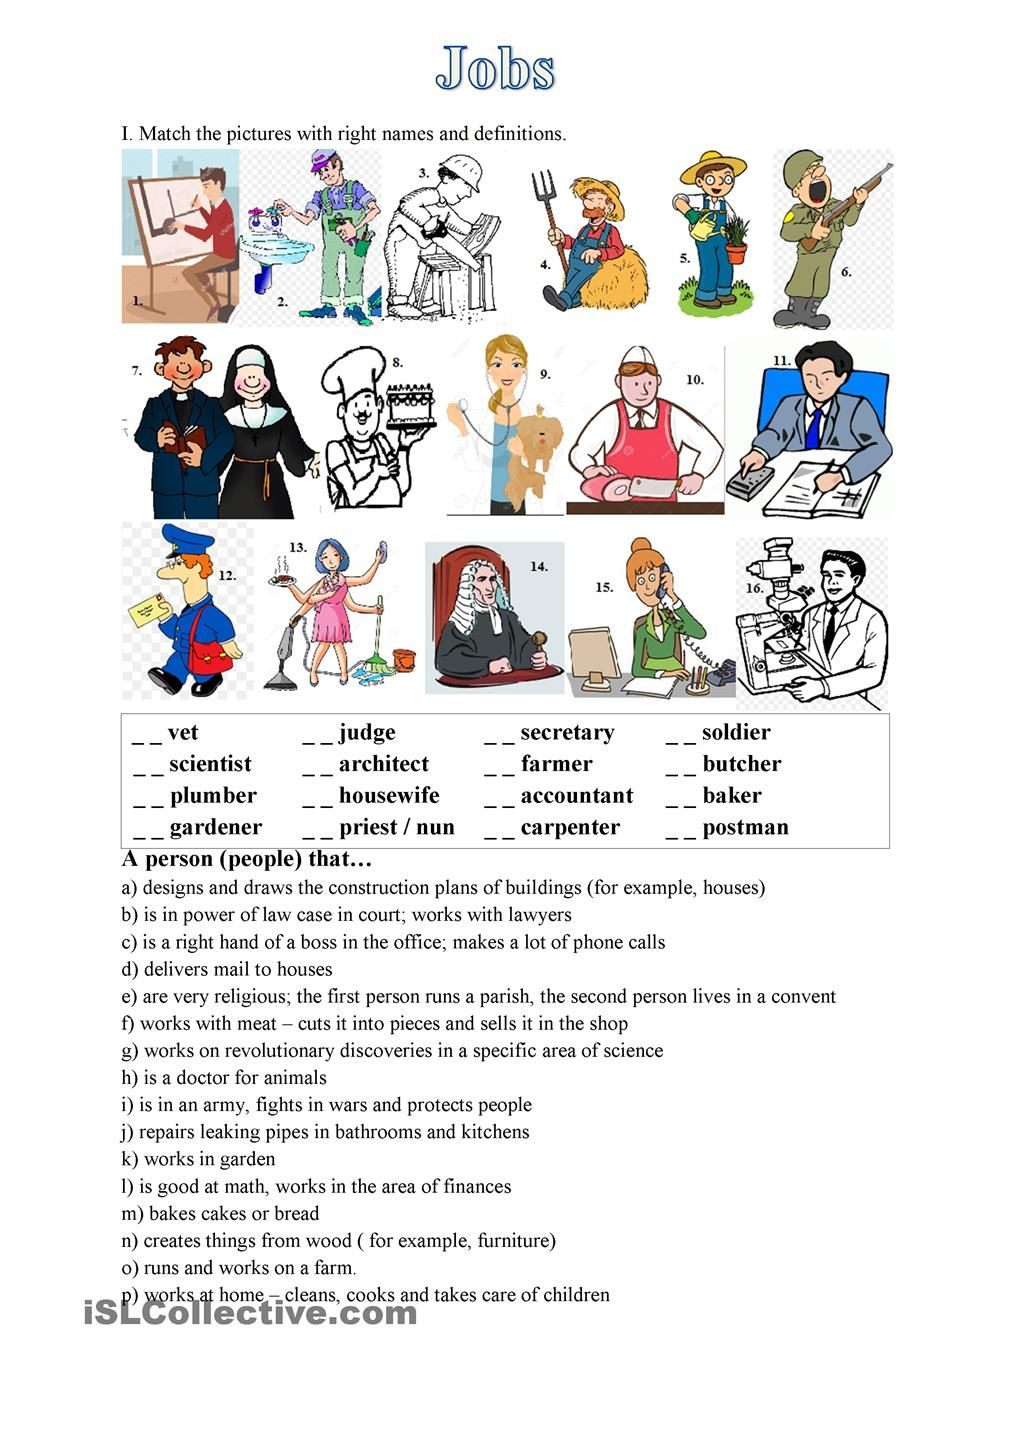 Jobs - exercise (matching picture with name and description) | ESL ...